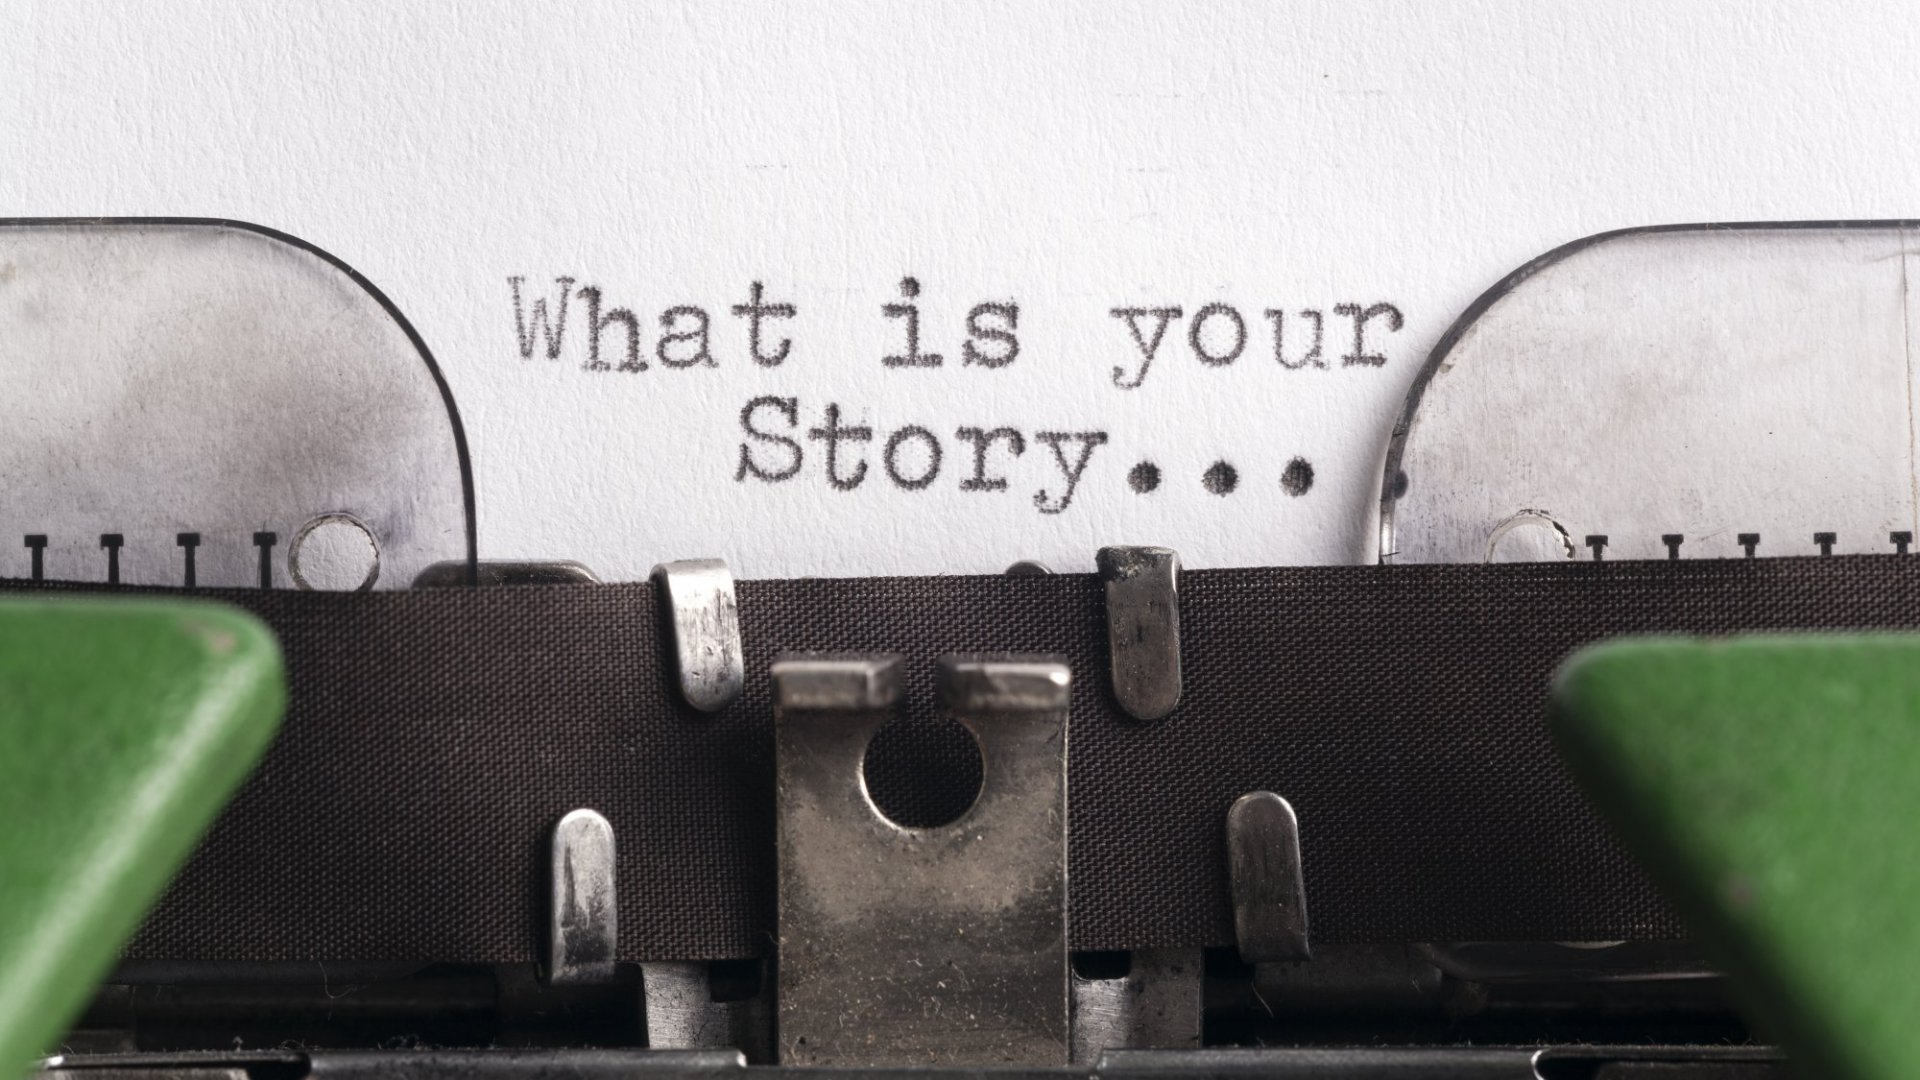 4 Ways to Use the Power of Story to Build Your Business